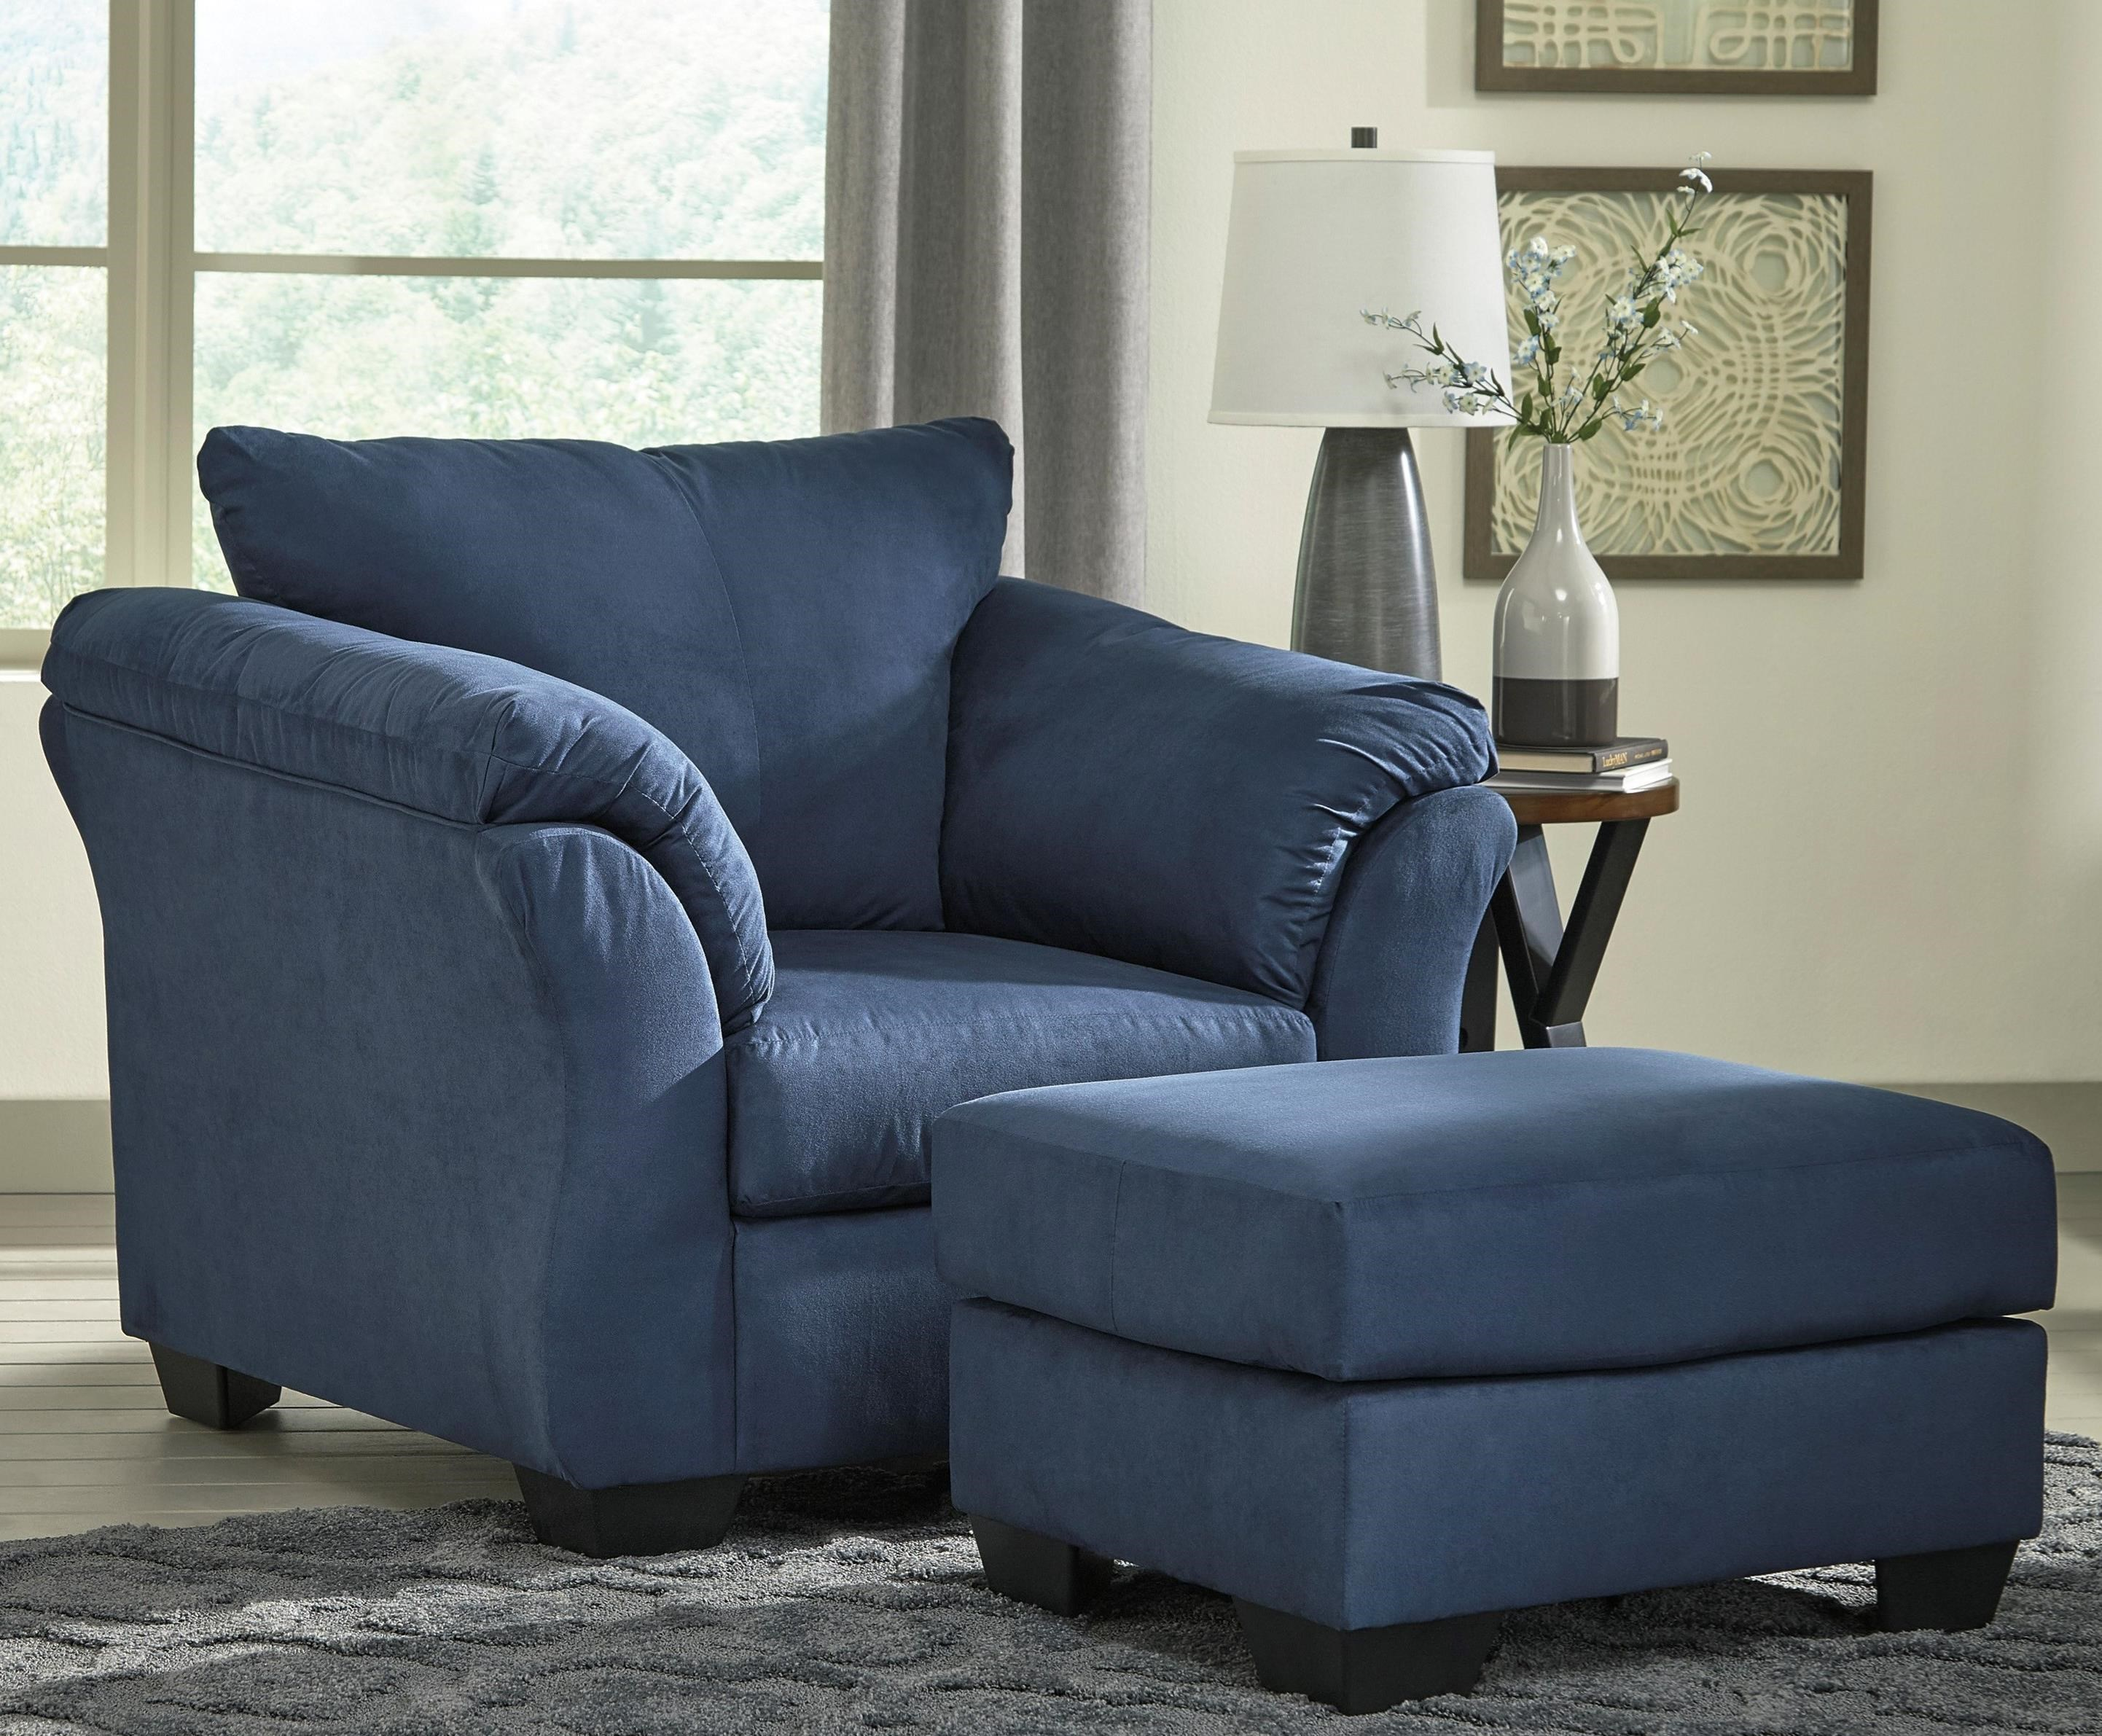 Signature Design By Ashley Darcy   BlueUpholstered Chair And Ottoman ...